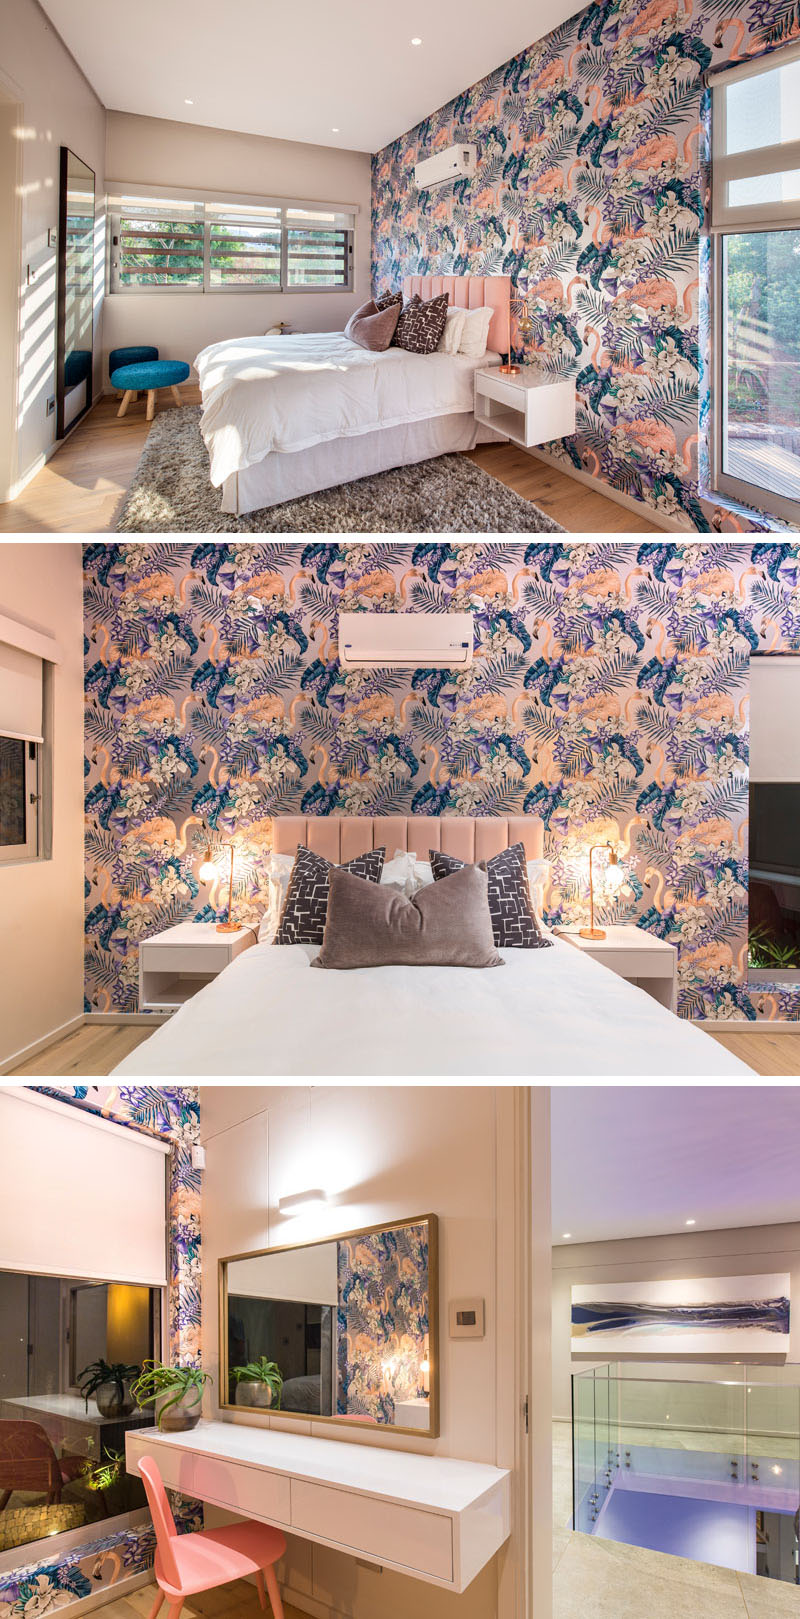 In this modern fun and tropical inspired bedroom, shades of pink, purple, and blue are used in the decor and fabrics to compliment the bright and colorful, flamingo wallpaper used on the accent wall.